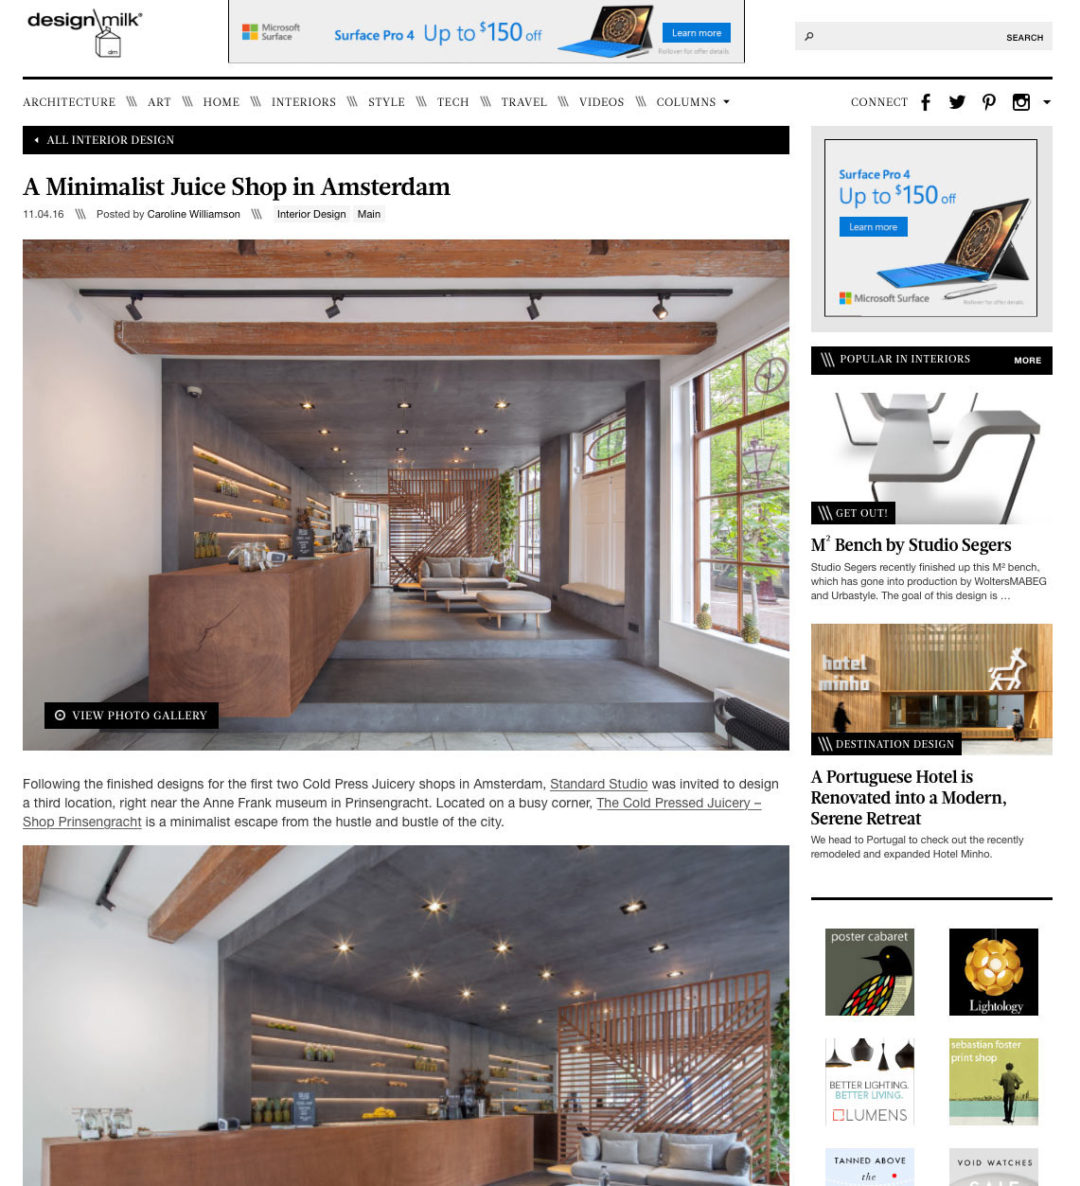 design-milk-new-site-article-pages